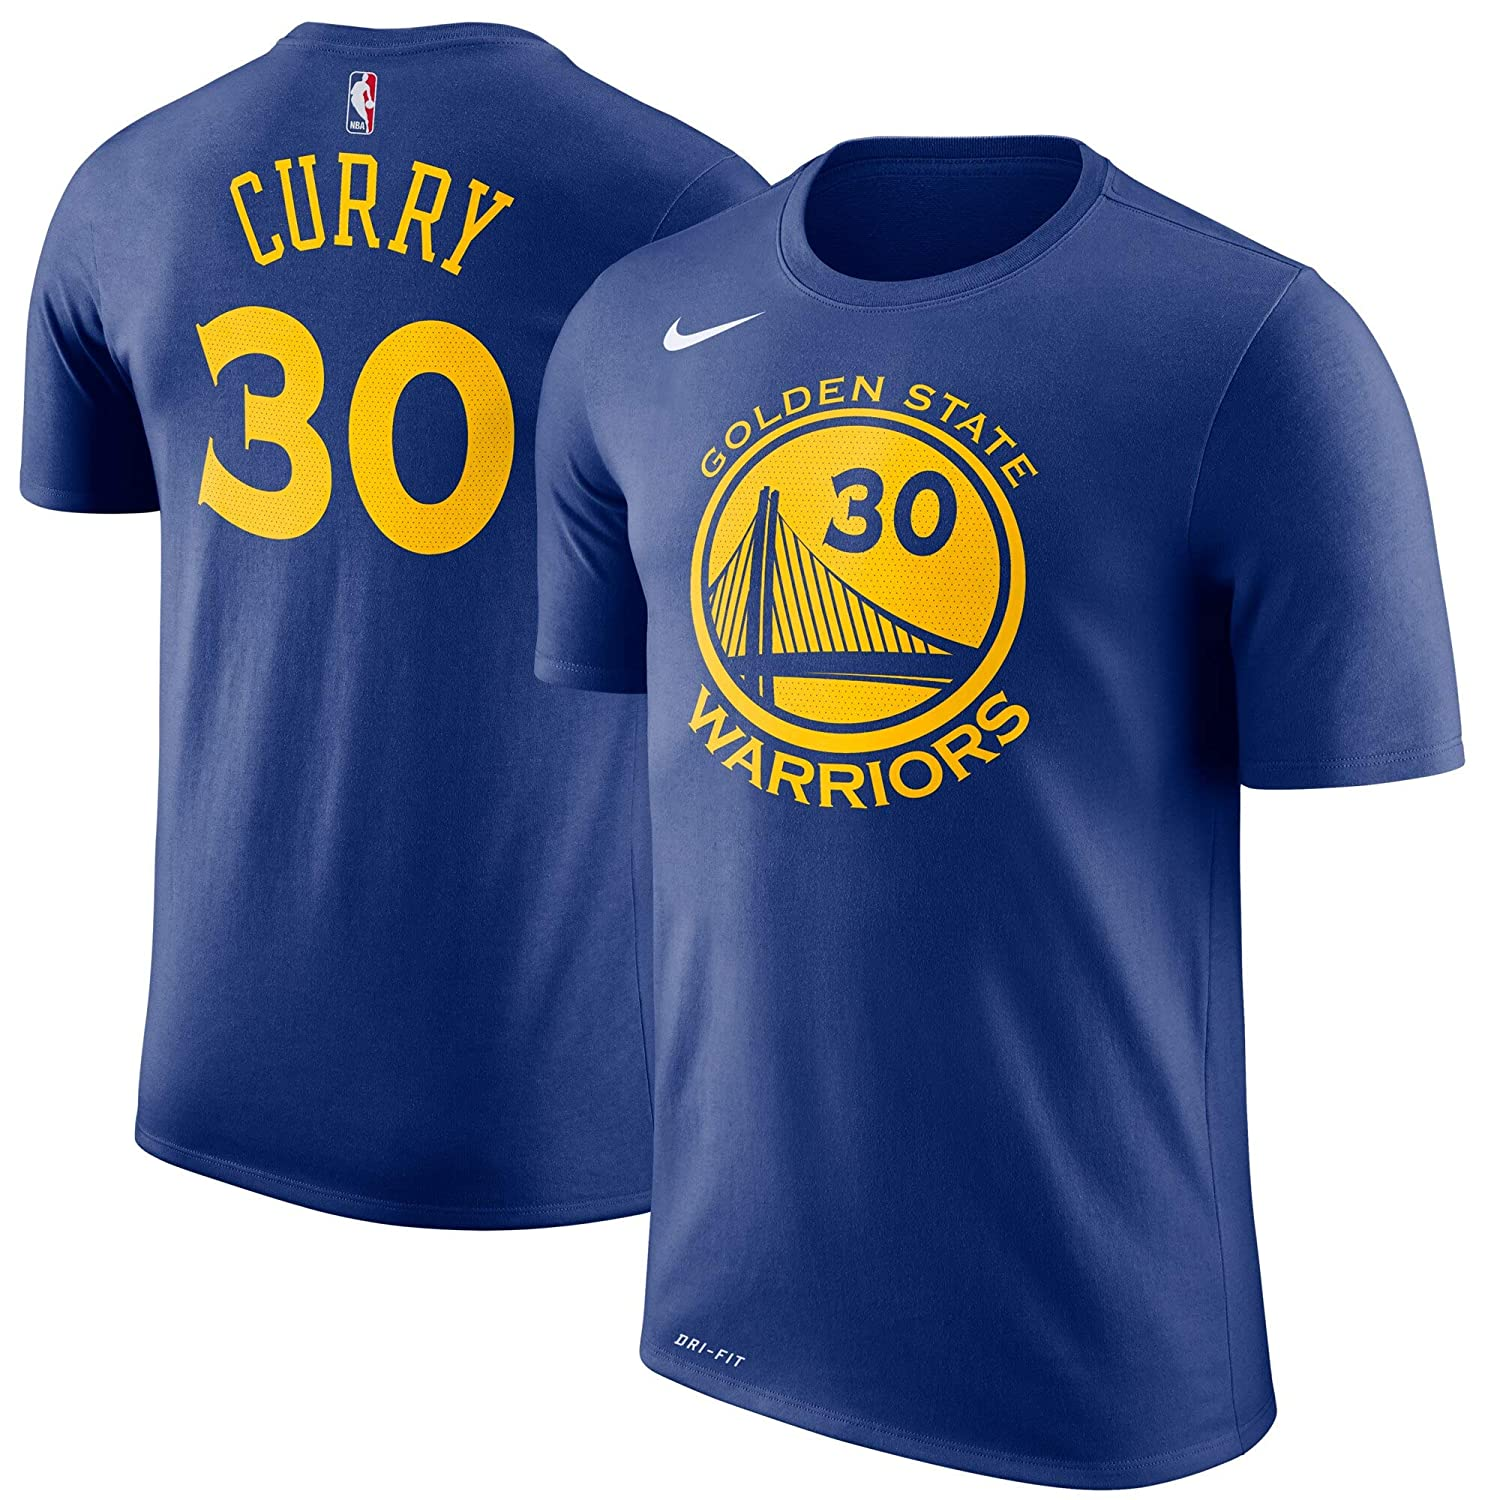 c8178303fe5d9 Nike Stephen Curry Golden State Warriors NBA Youth 8-20 Royal Blue Official  Player Dri-Fit Performance T-Shirt